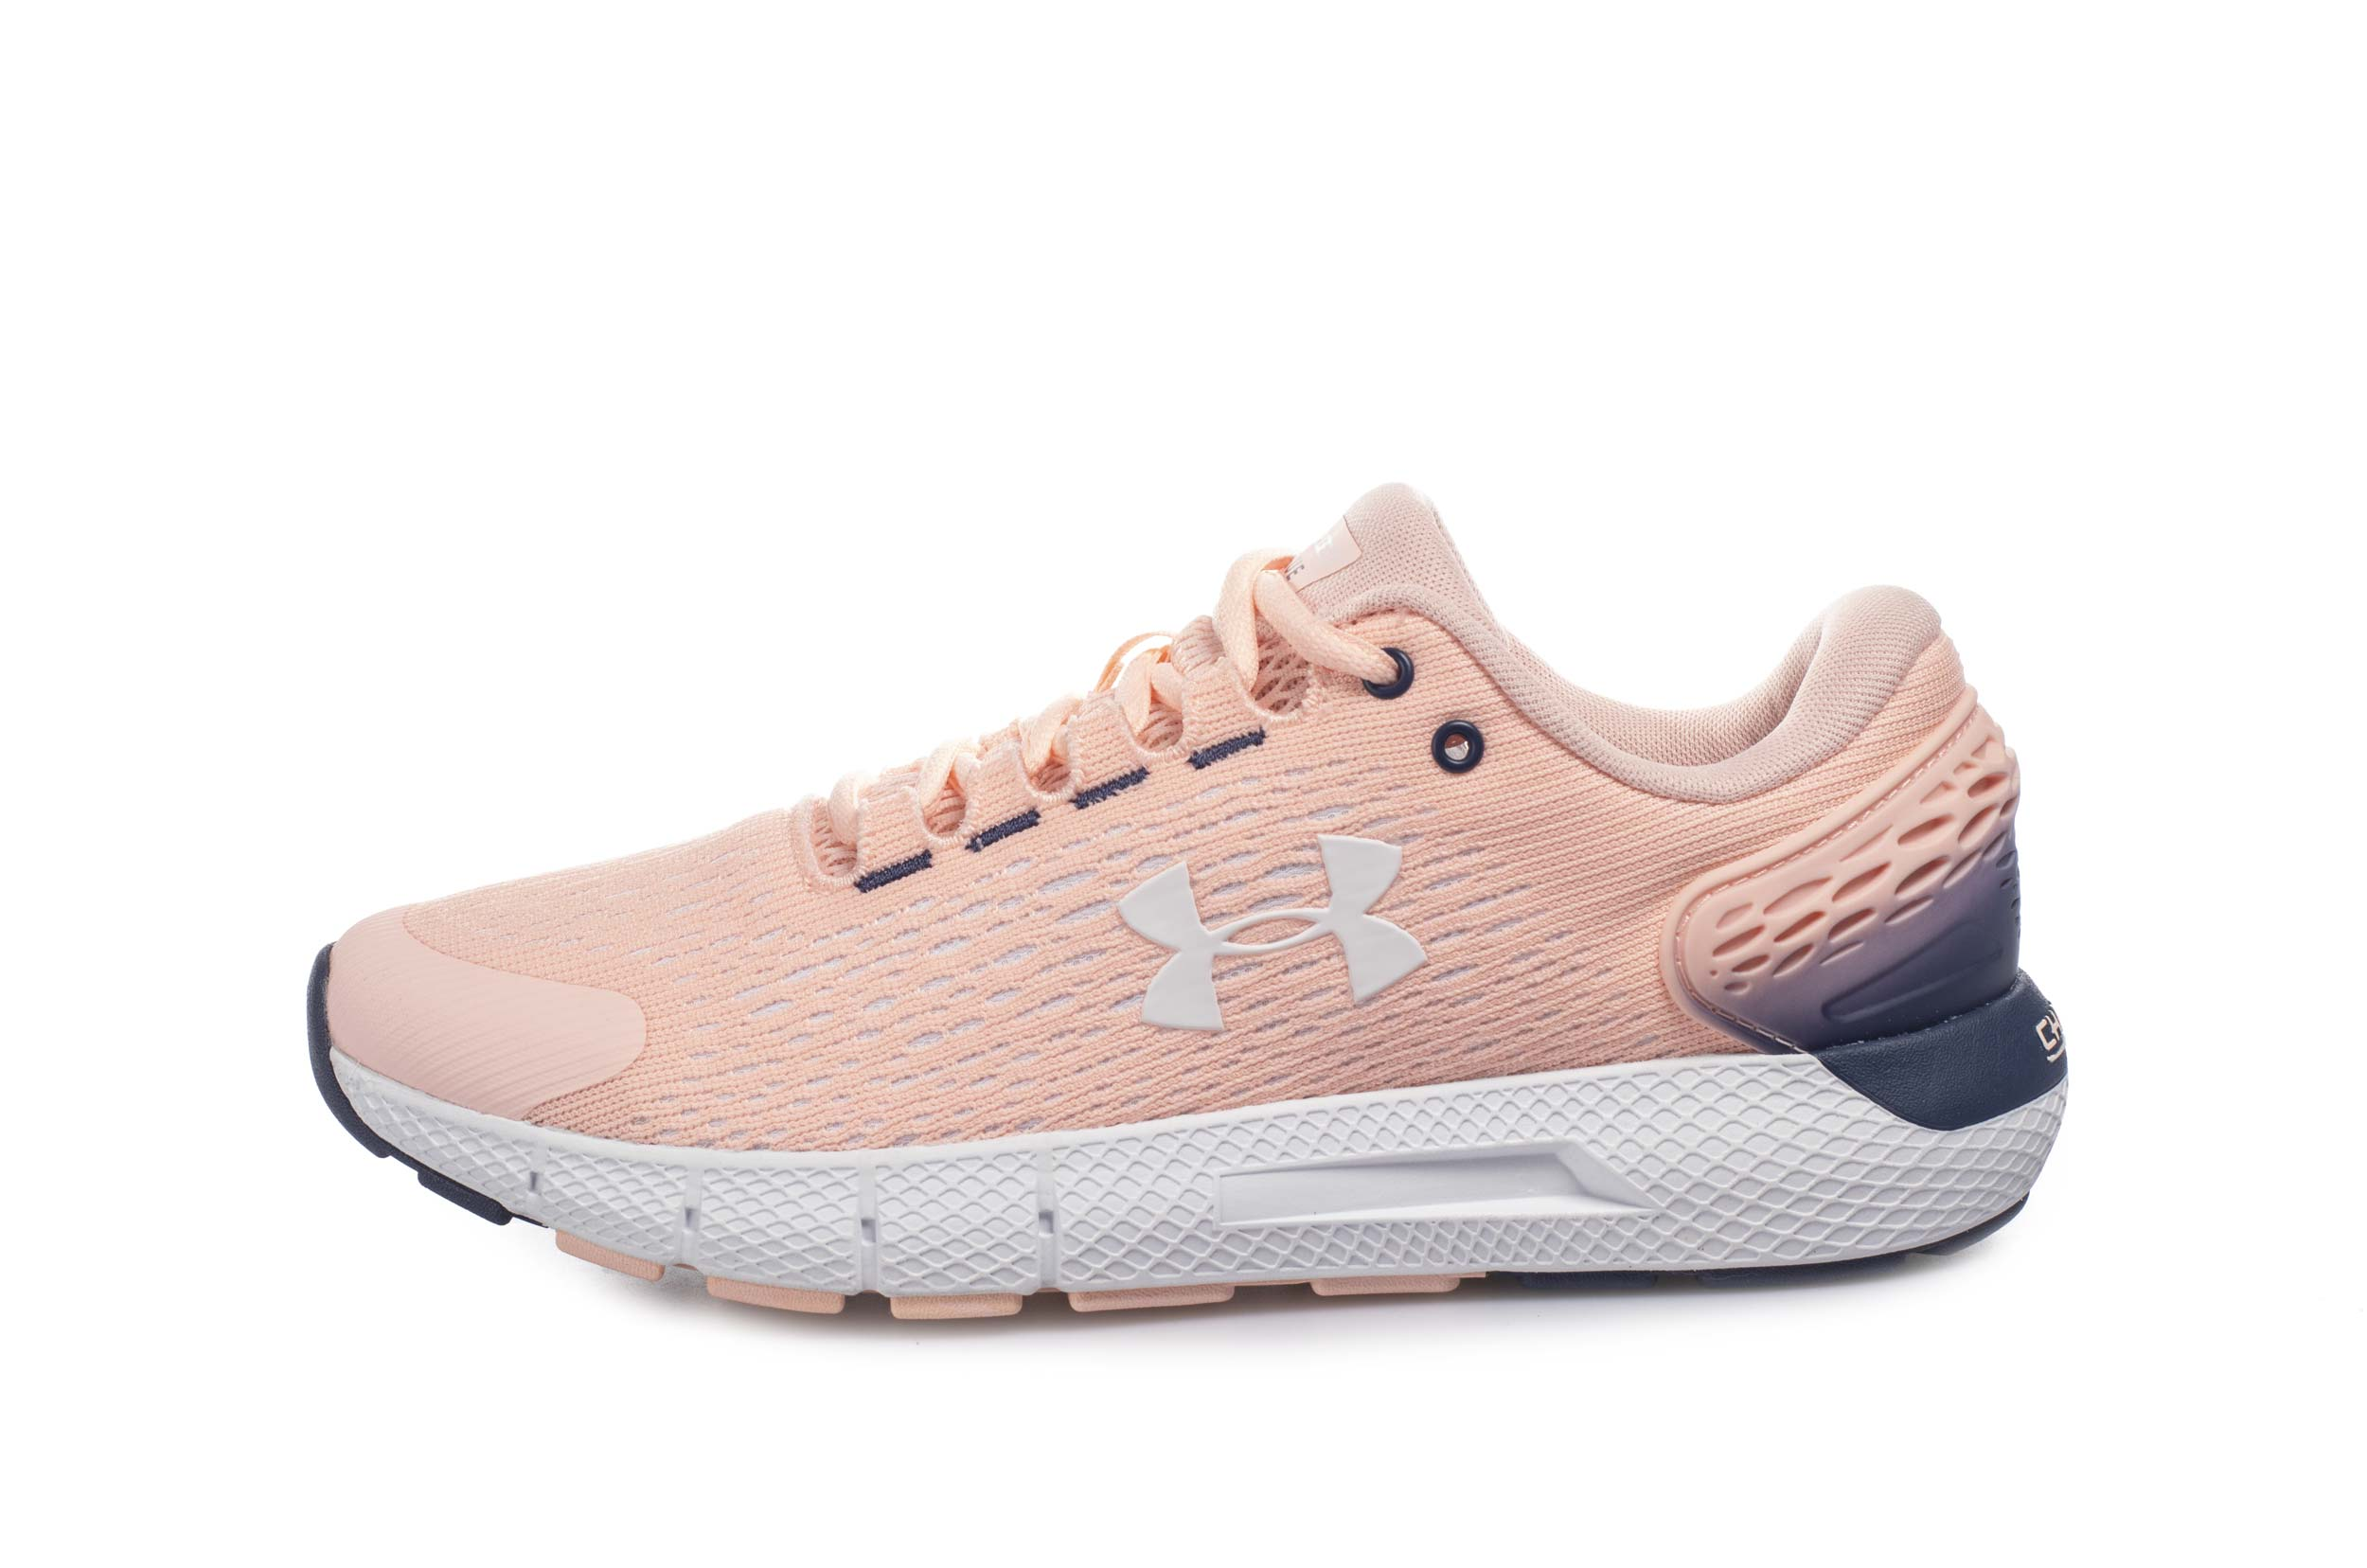 UNDER ARMOUR W CHARGED ROGUE 2 3022602-600 Ροζ